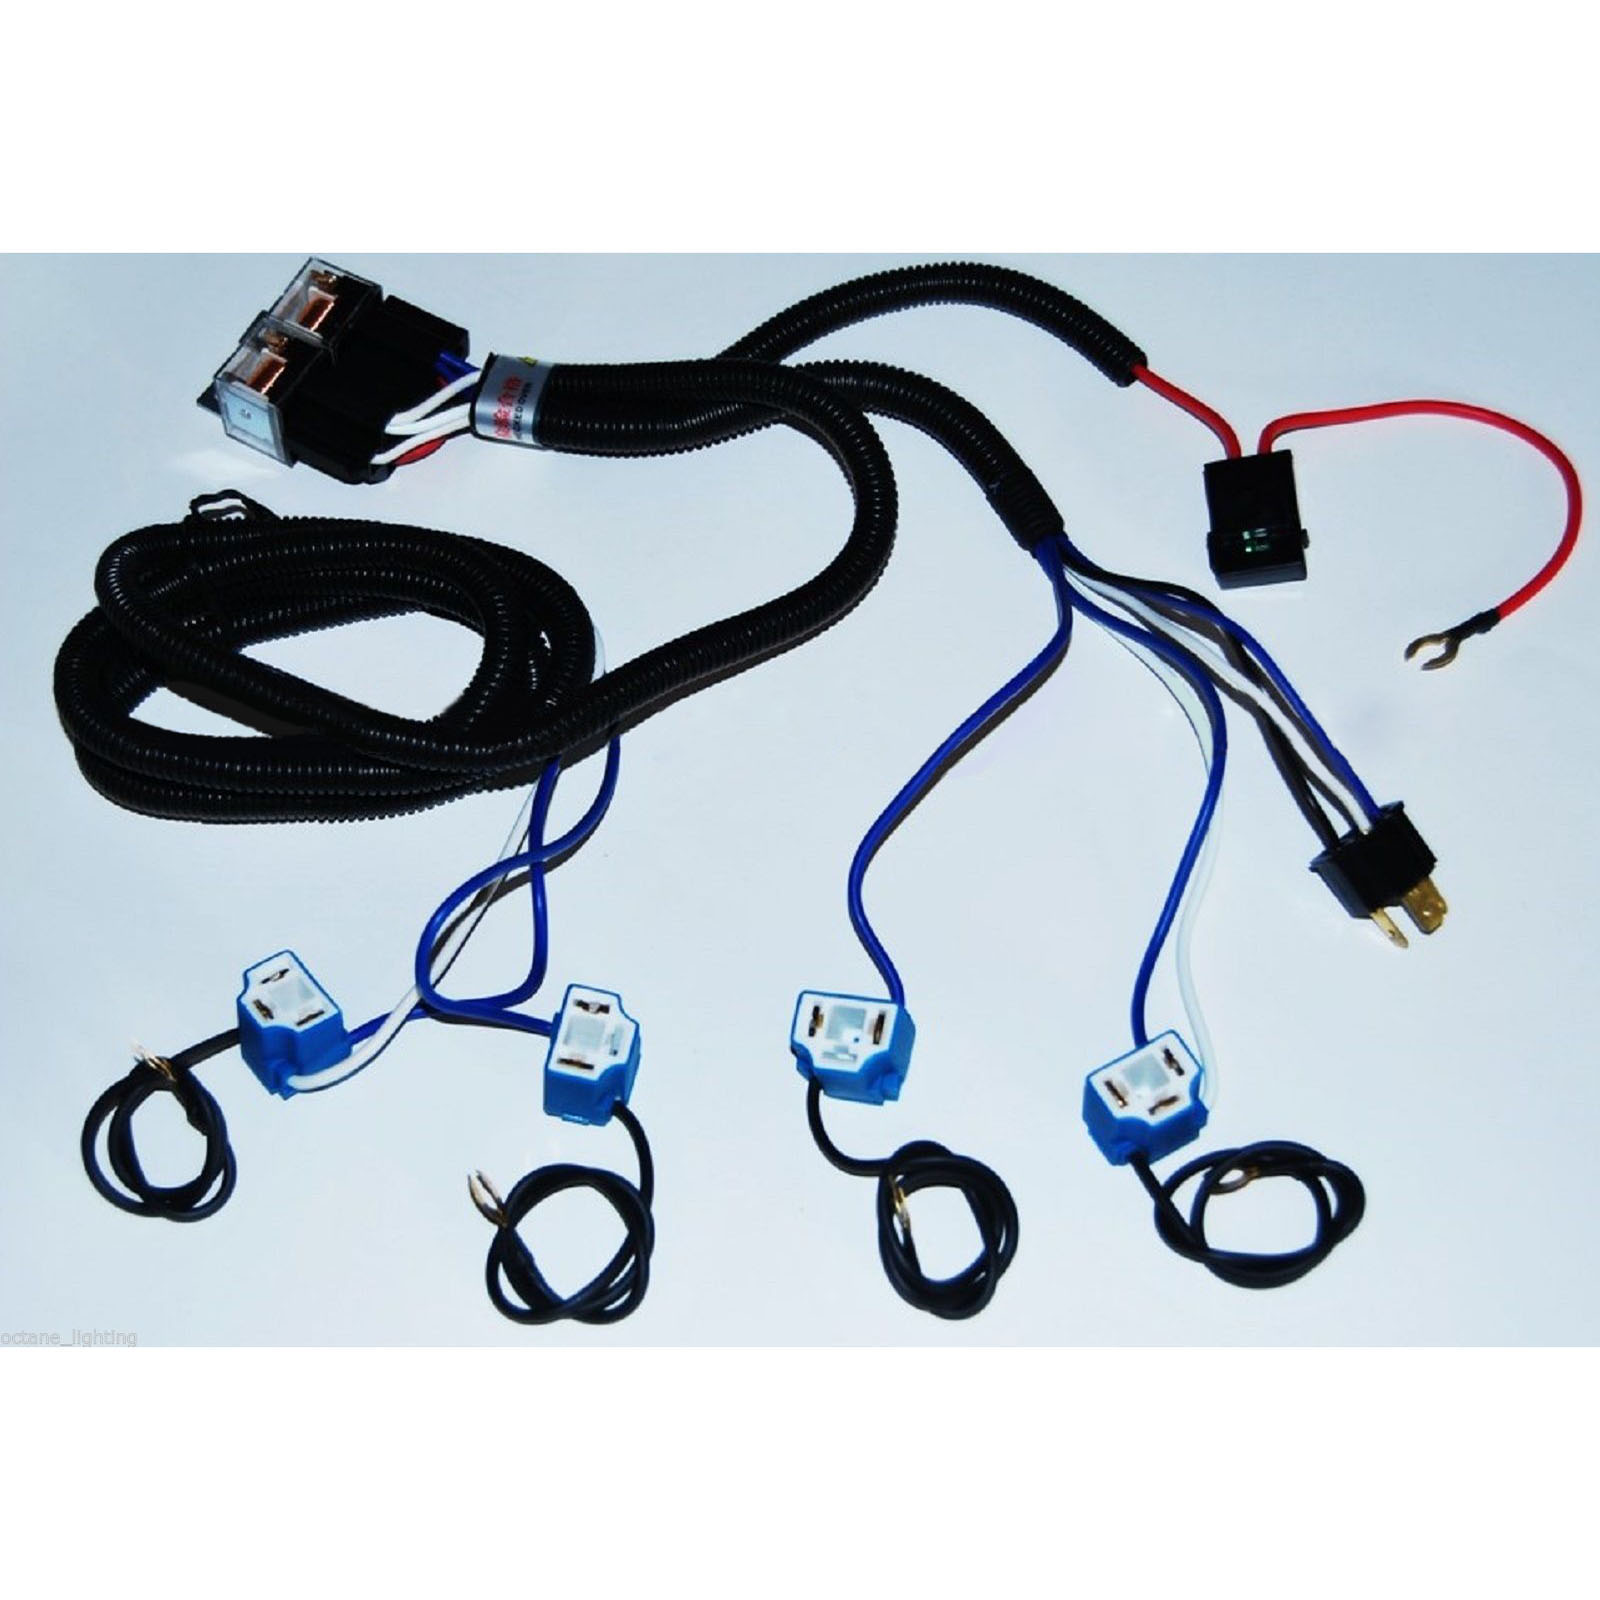 Ceramic H4 Relay Wiring Harness 4 Headlight Headlamp Light Bulb 2 5 88 Dodge Socket Plugs 4x6